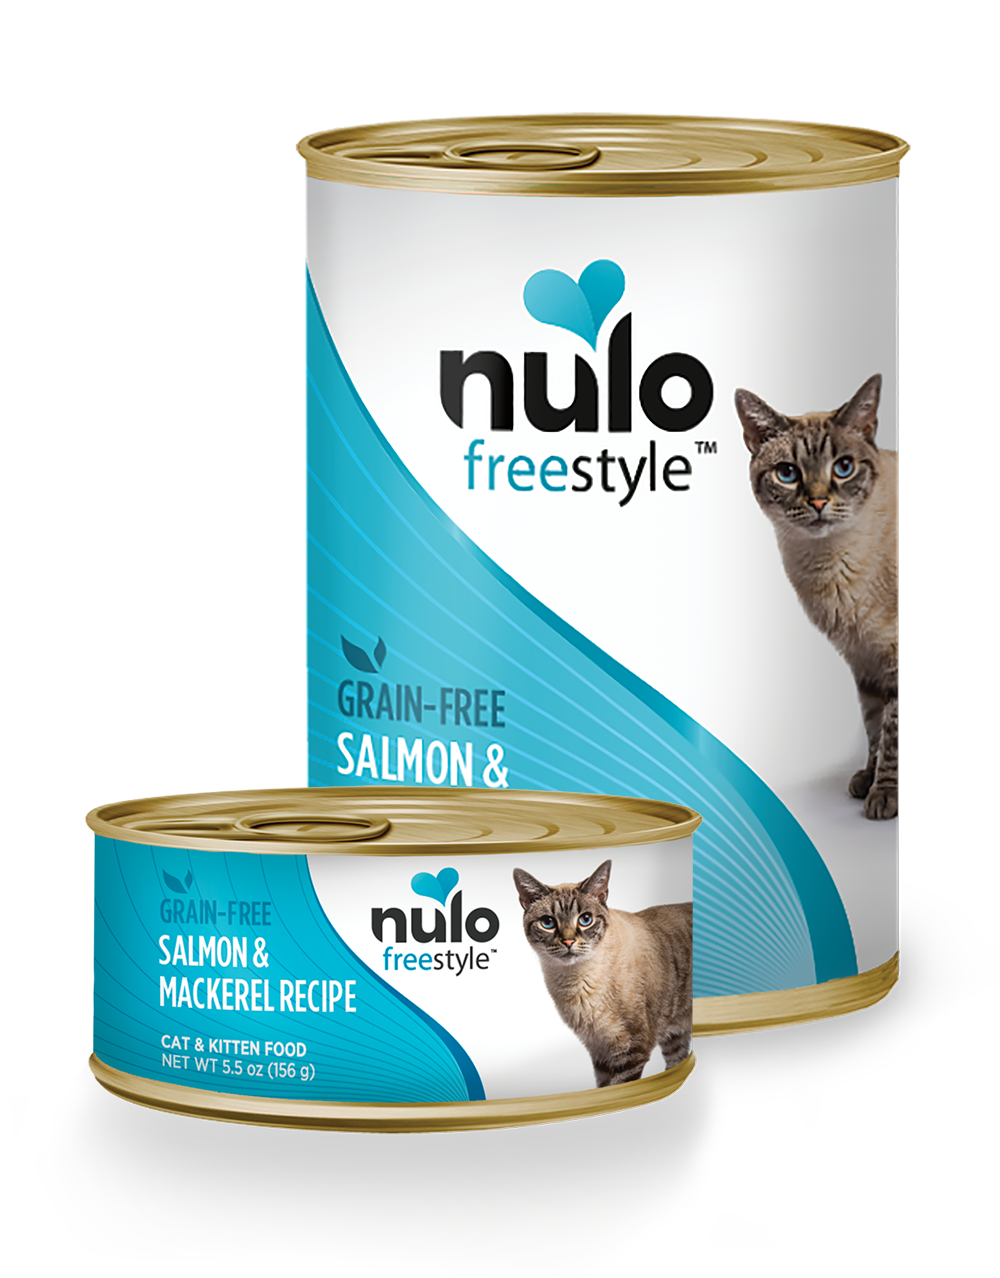 Nulo freestyle cat salmon can